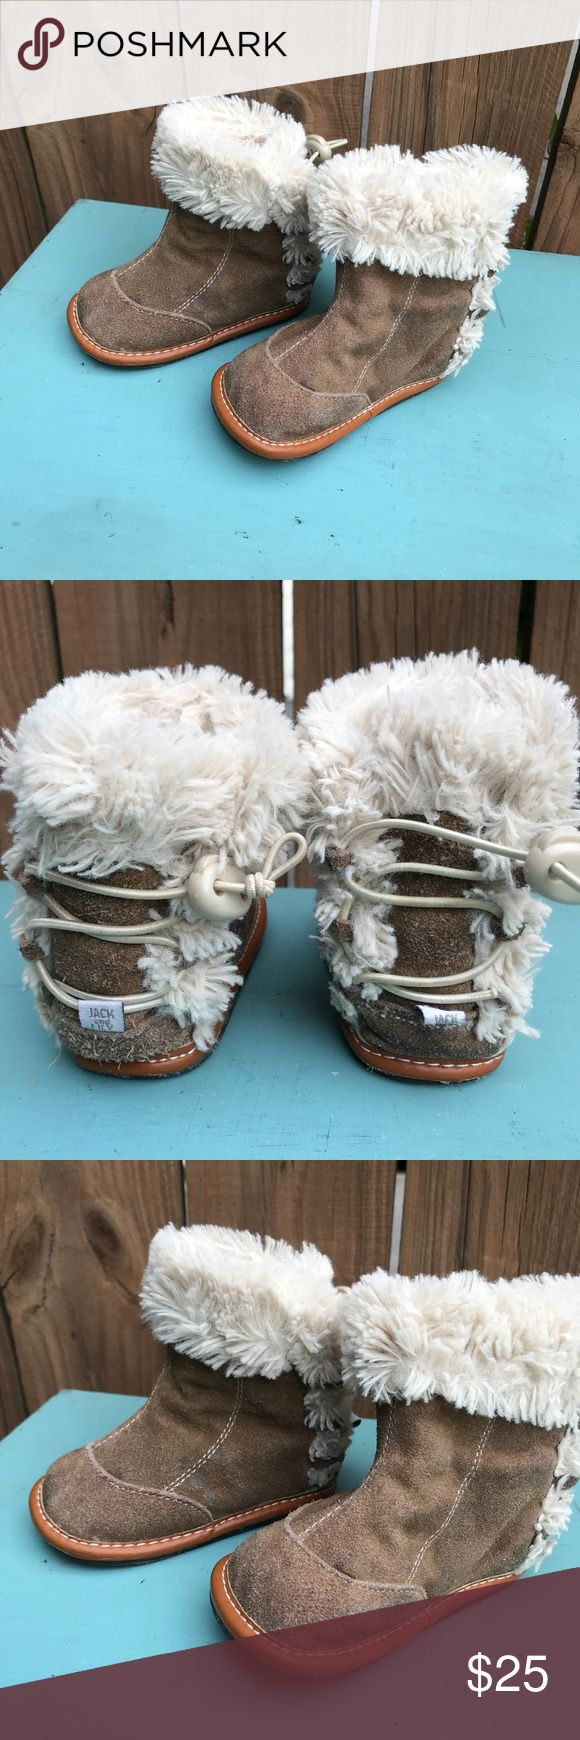 """Jack and Lily boots Jack and Lily suede and cotton ankle booties Some spots on the suede Please See pictures Tag says 12-18 Outside sole measures 5 1/2 """" heel to toe. Adjustable straps to tighten bootie Except for slight spots on bootie really good condition Jack and Lily Shoes Boots"""